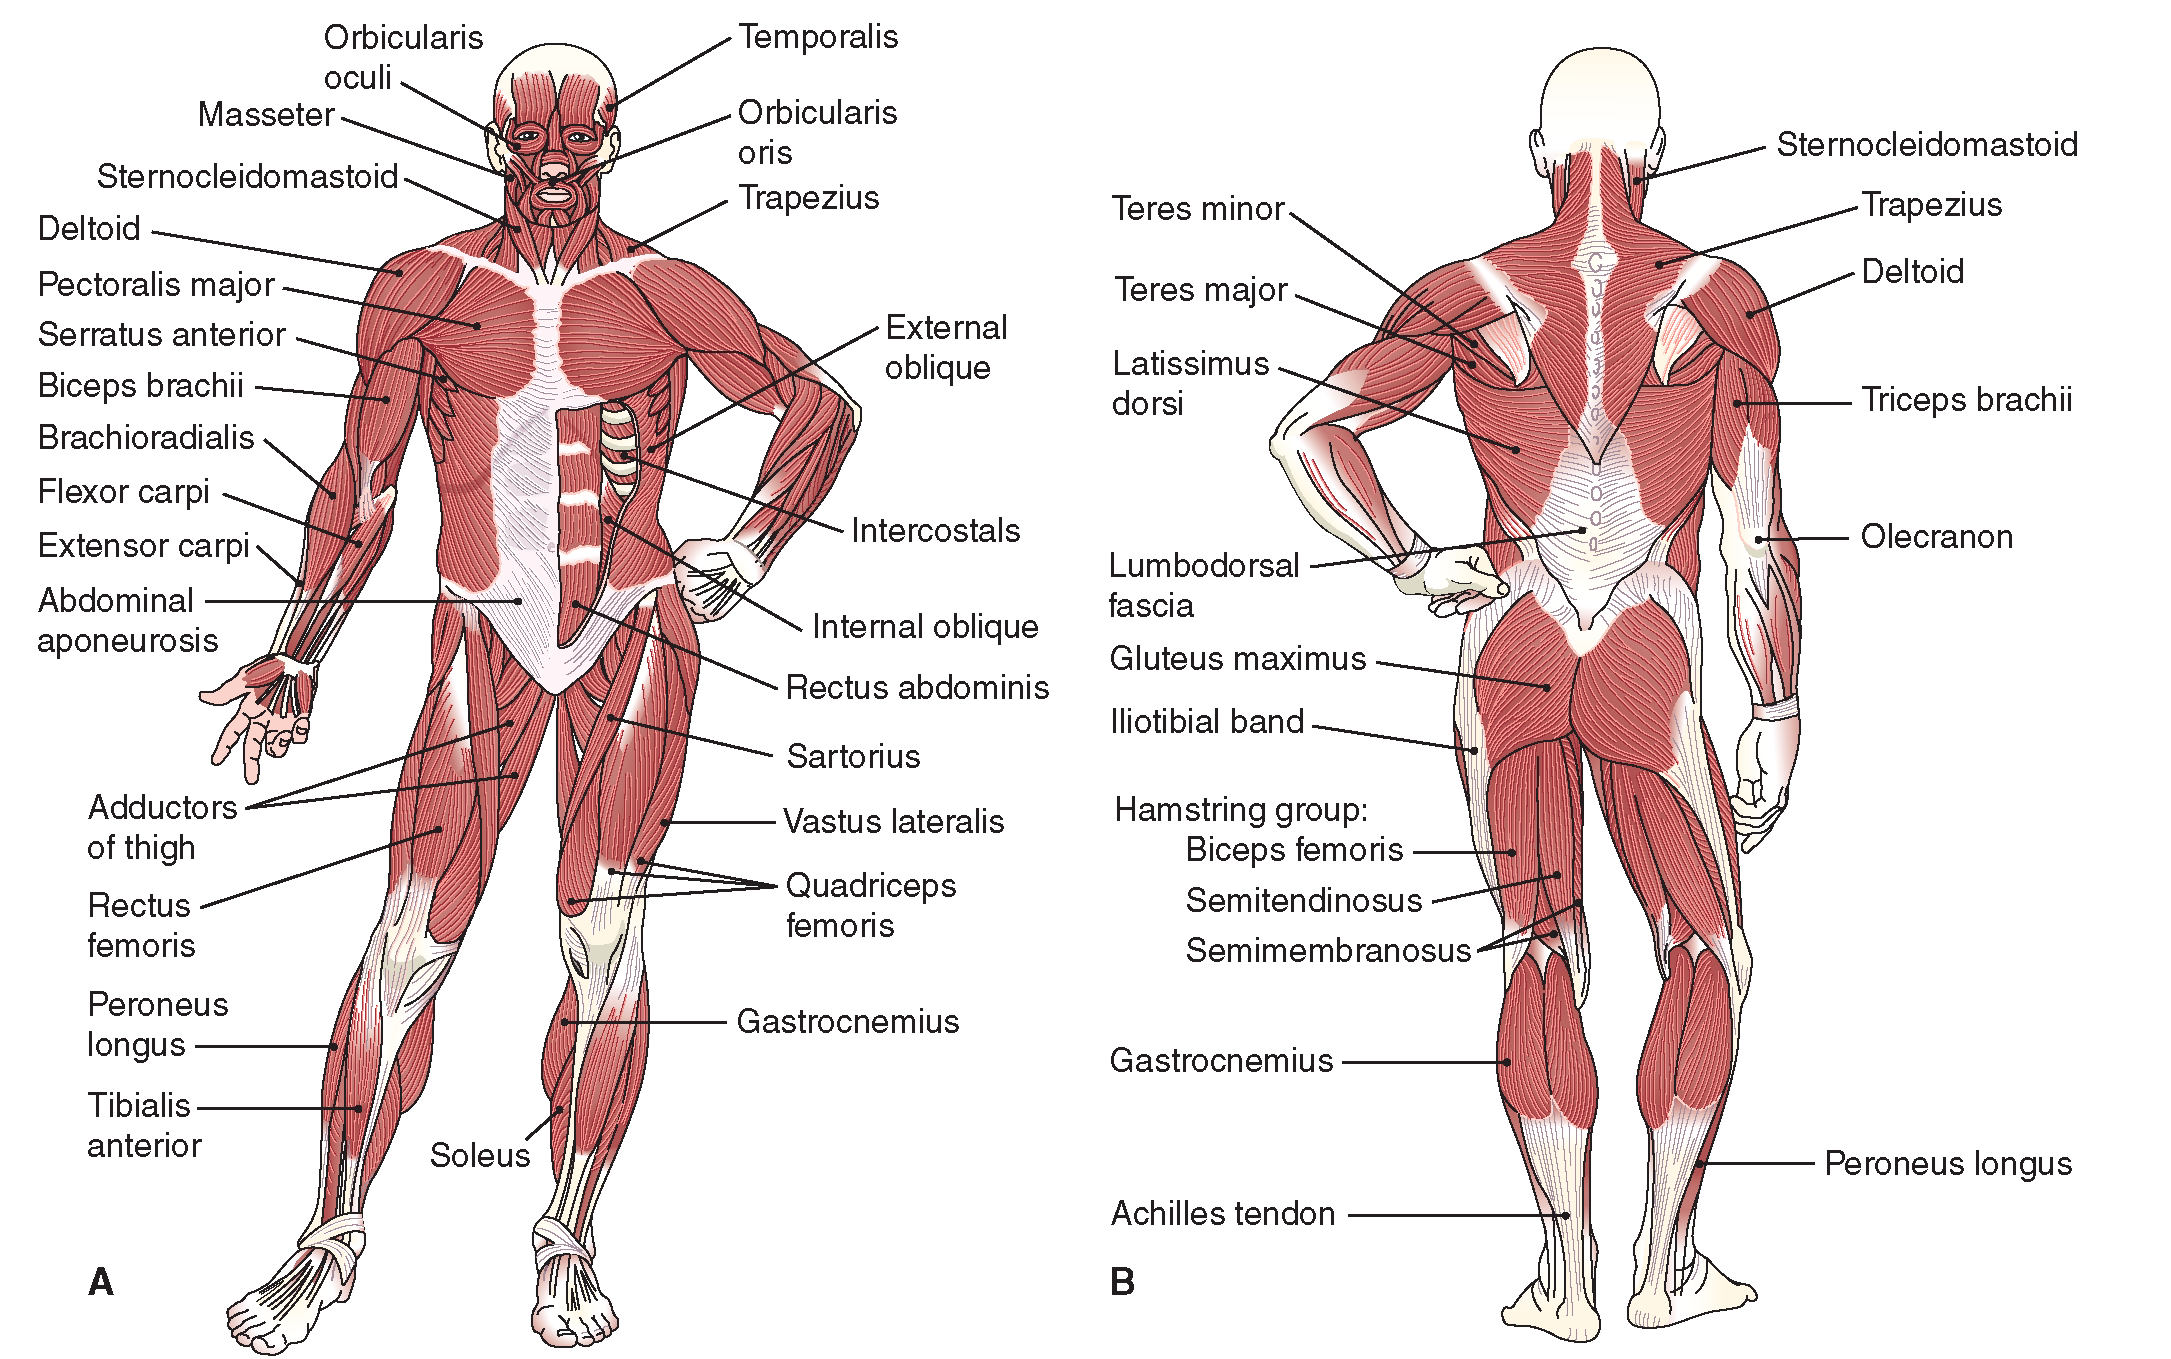 posterior muscles of the body diagram | Biology | Pinterest